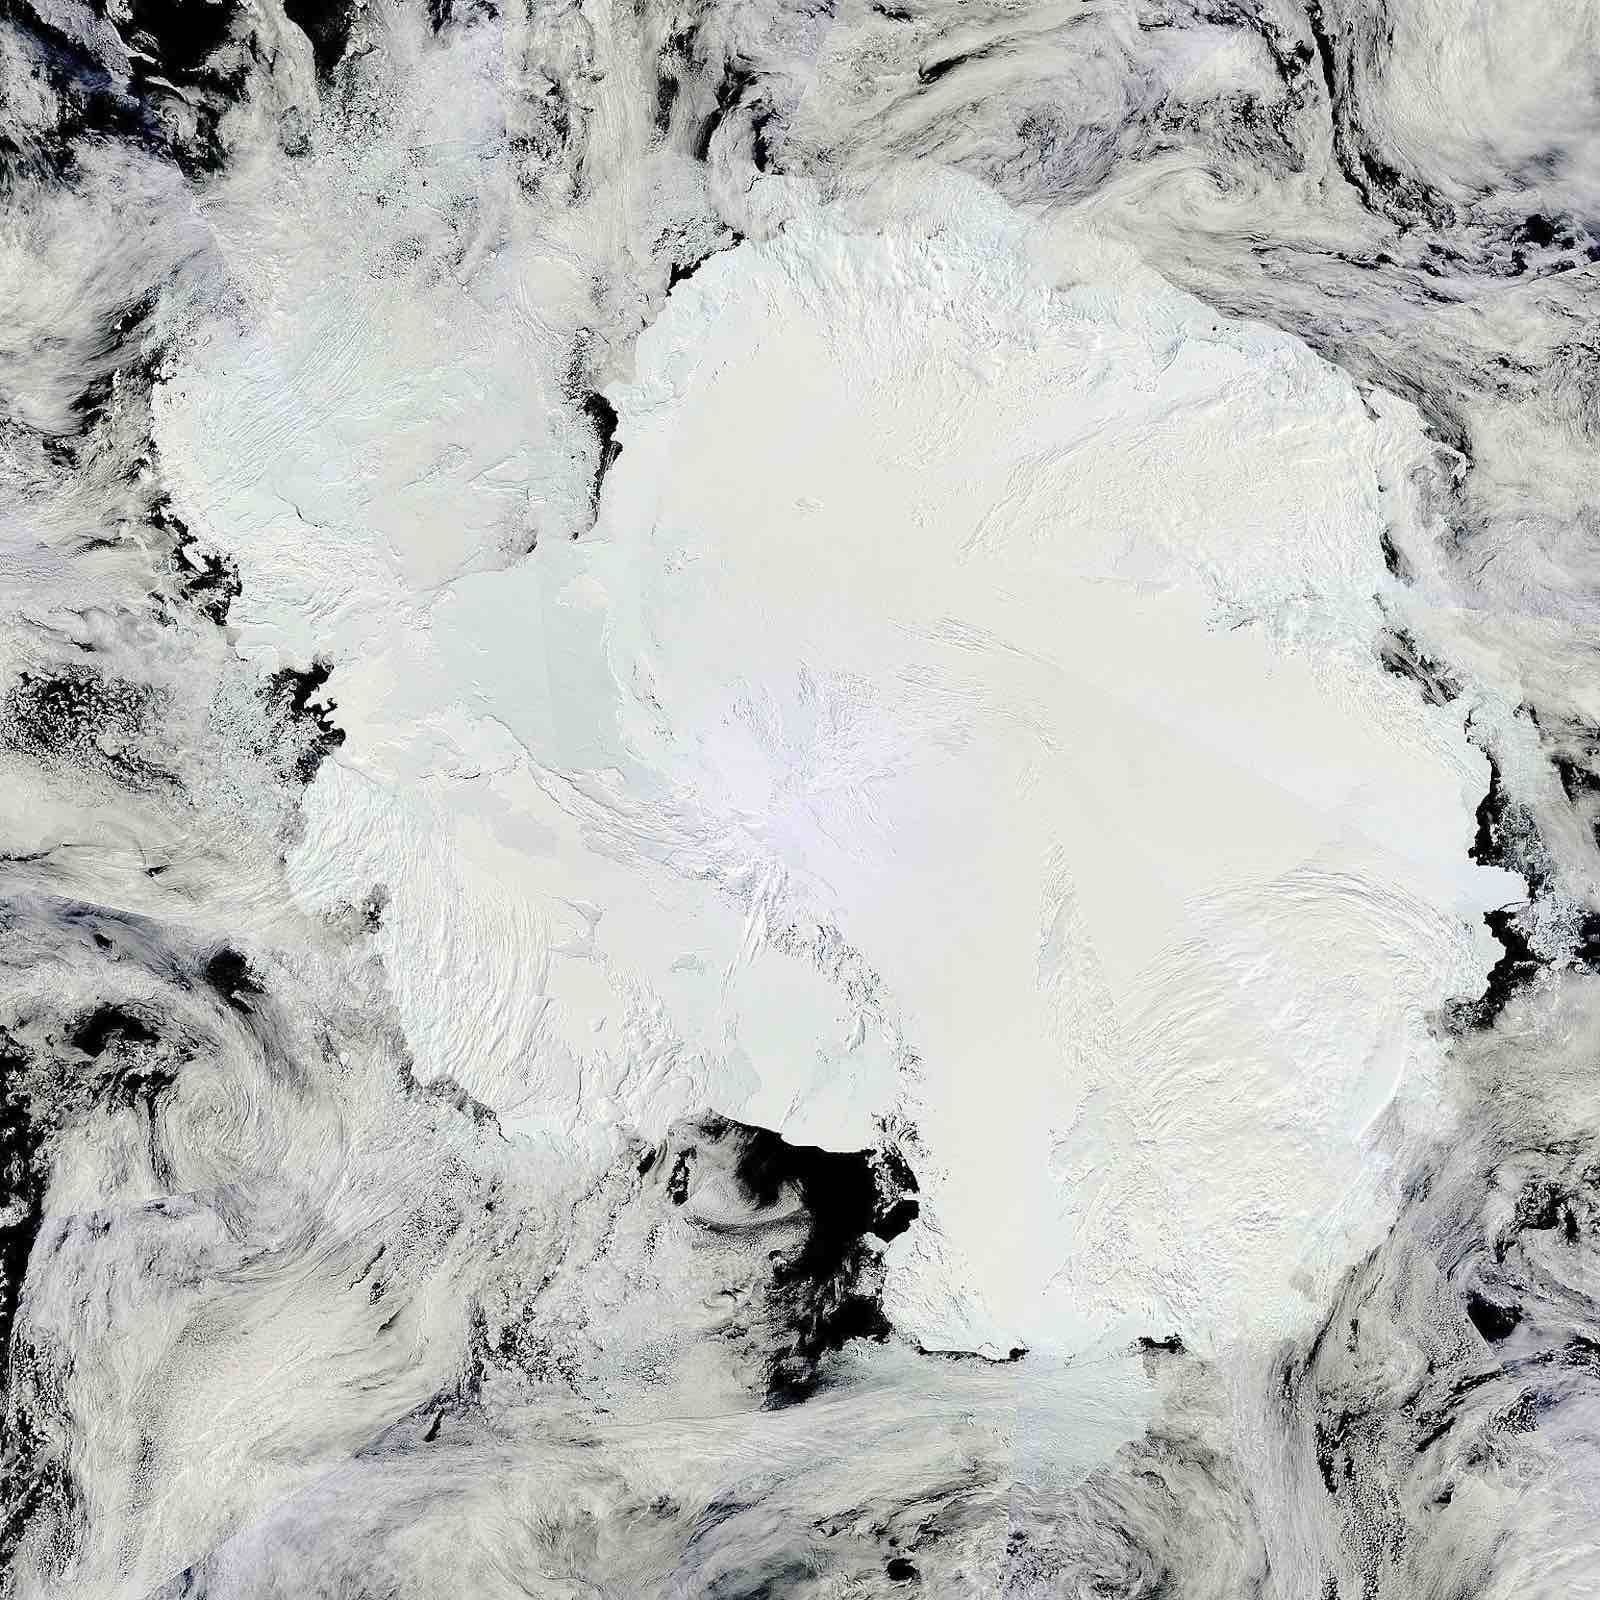 Mosaic of Antarctica (Photo: NASA Goddard Space Flight Center/Flickr)